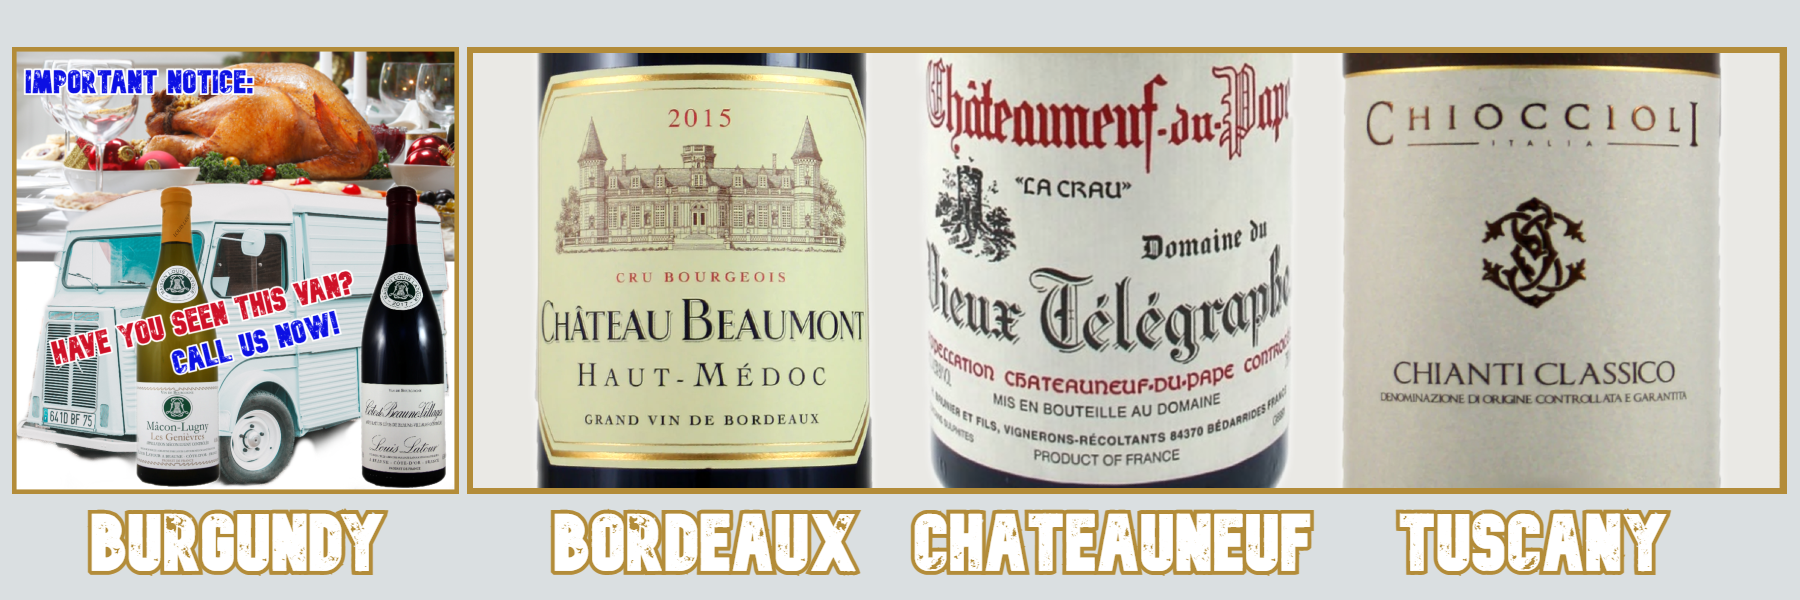 It's not only Burgundy for Christmas - Try Bordeaux, Chateauneuf-du-Pape & Chianti Classico